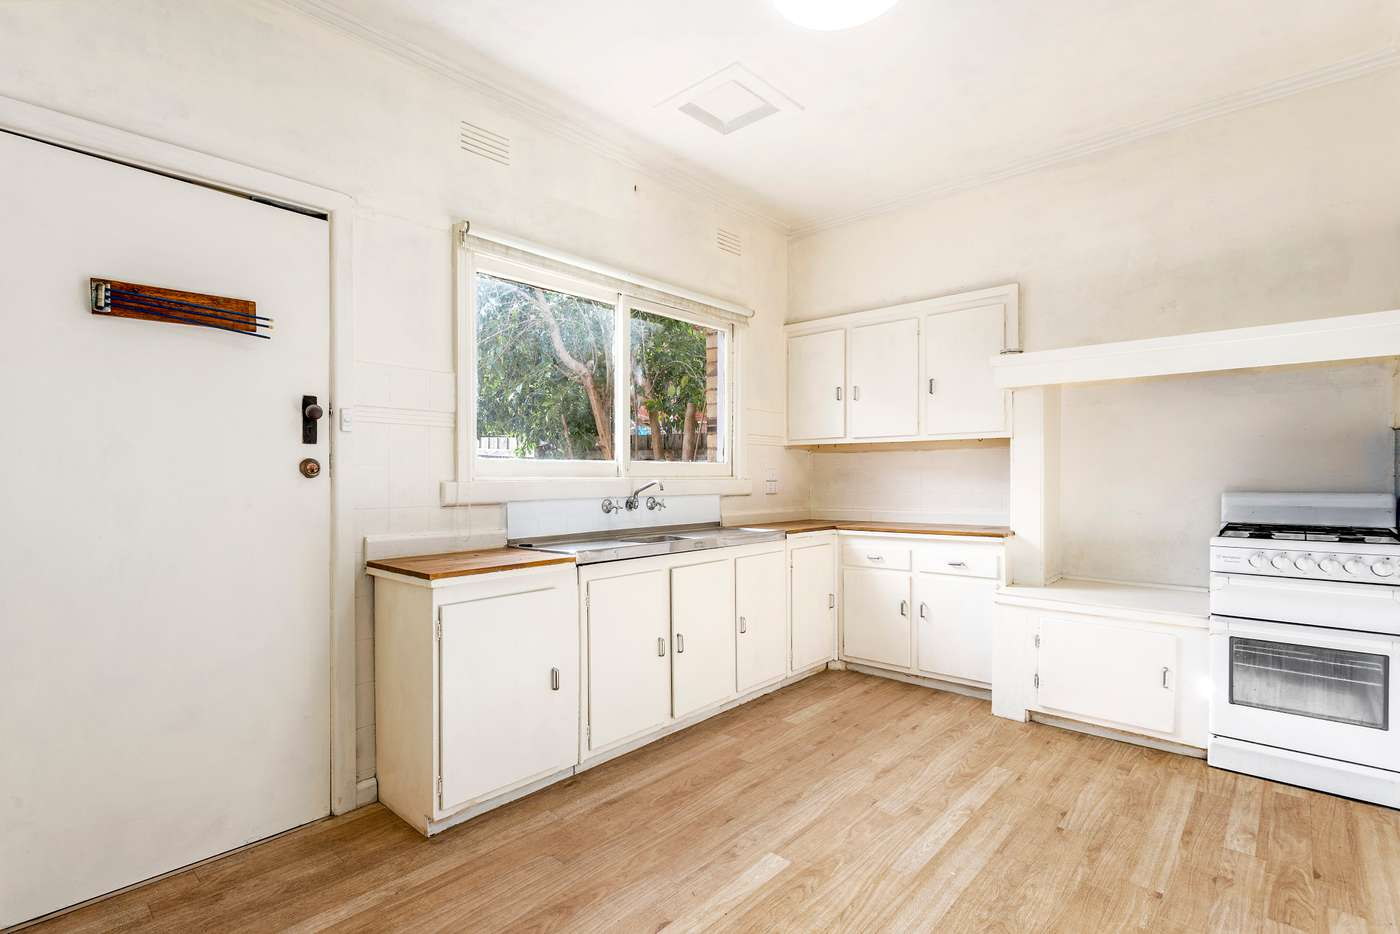 Sixth view of Homely house listing, 4 Latrobe Street, Box Hill South VIC 3128